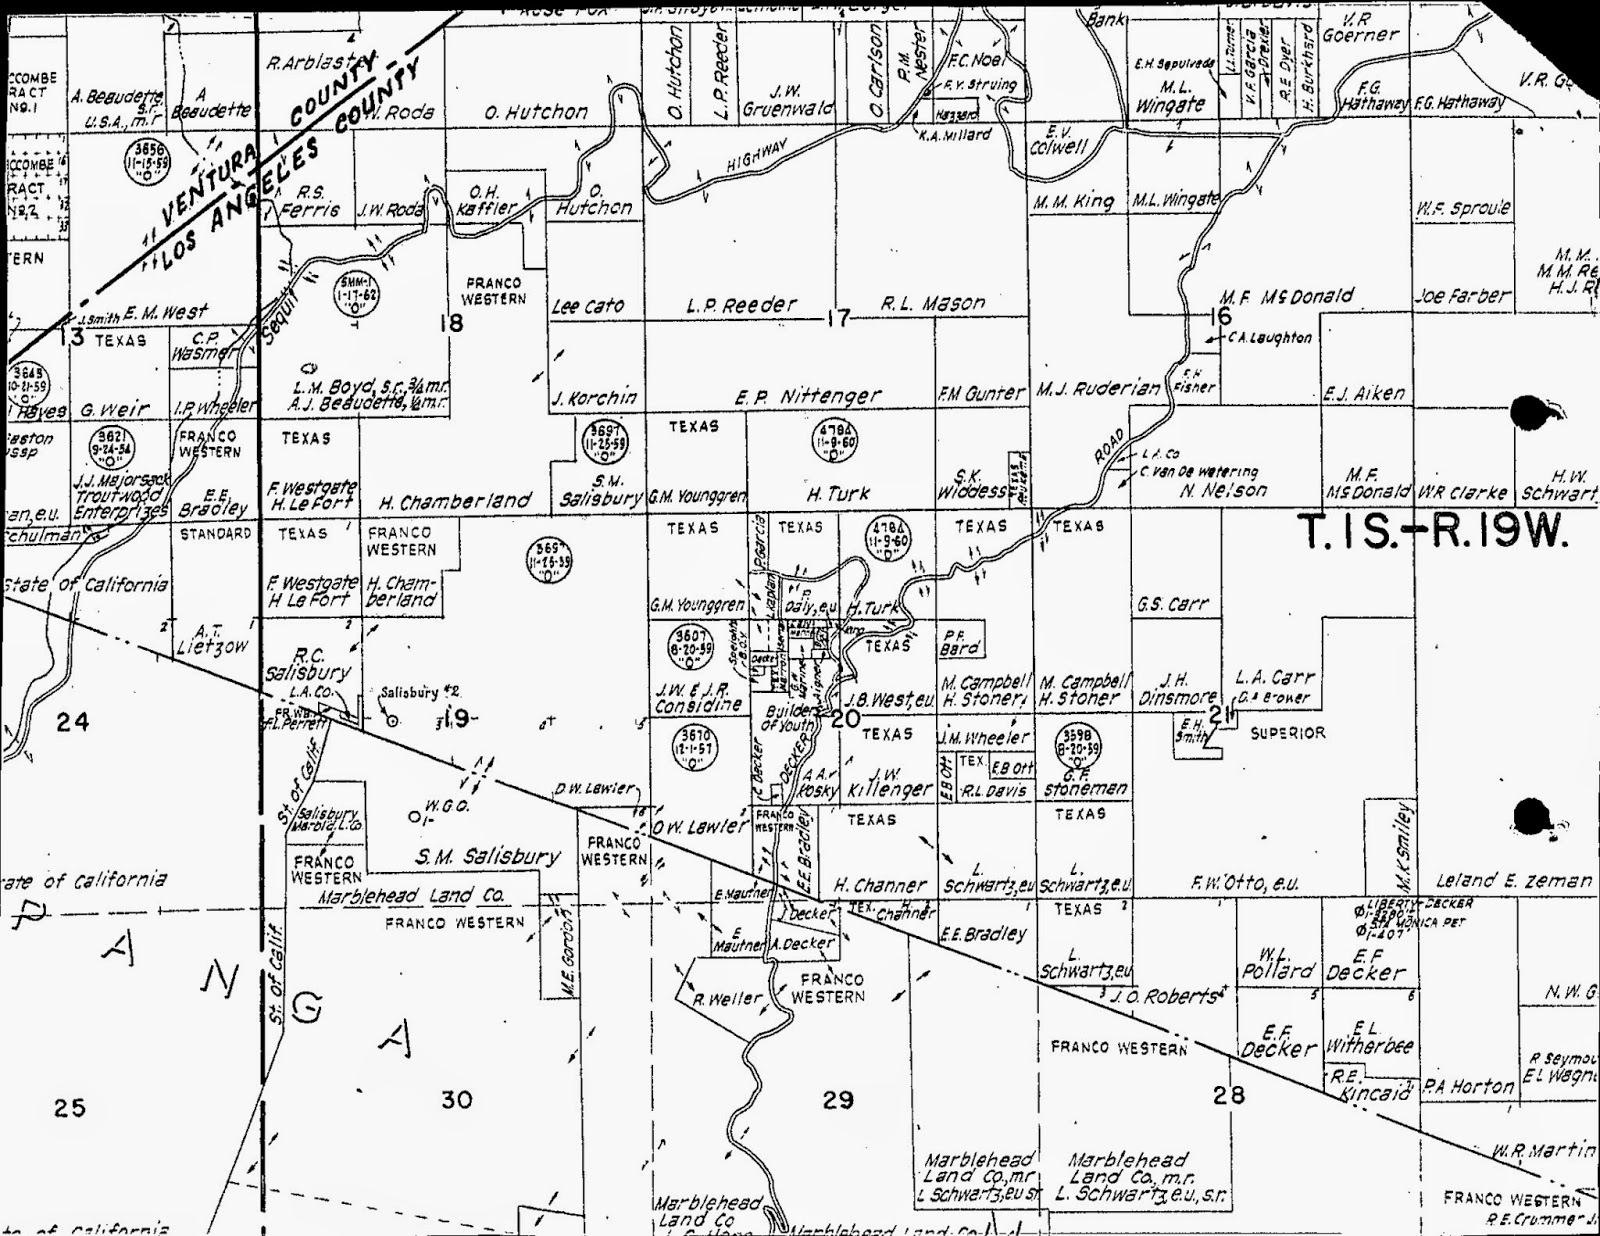 This map records oil leases on homesteads in the yerba buena and decker area it's available as part of the well record for one of the two texaco leases in